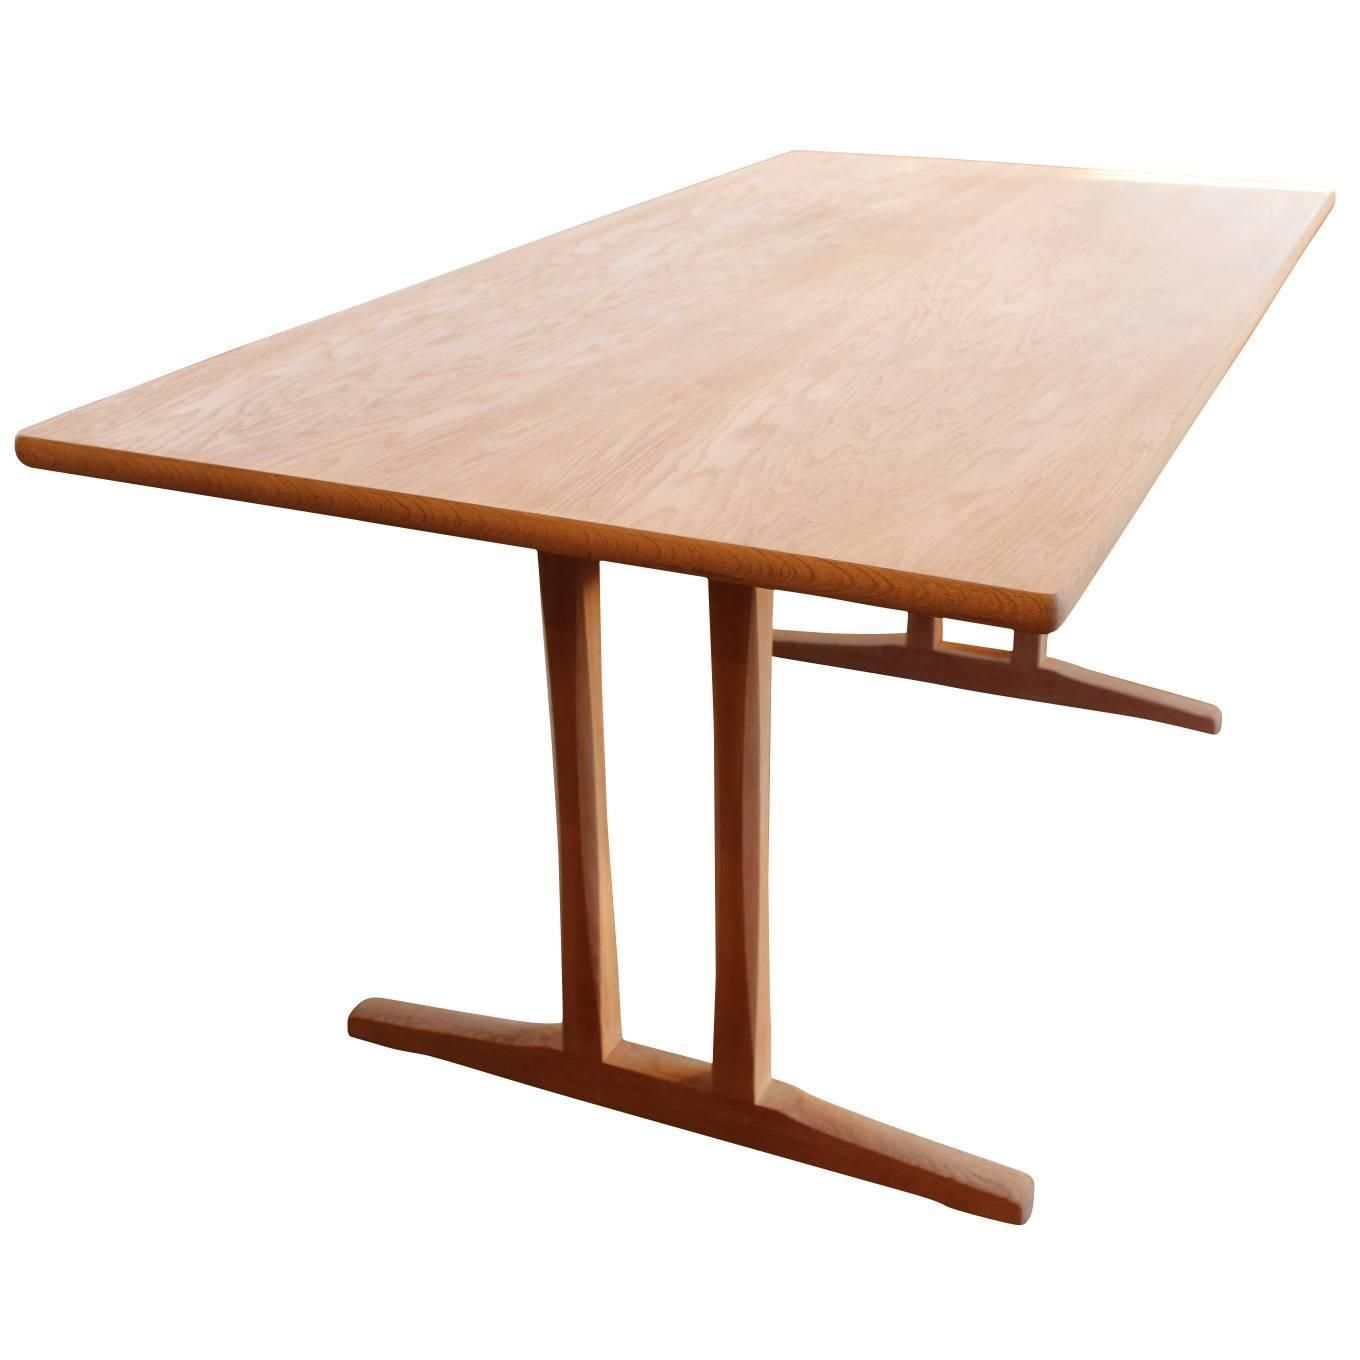 Shaker Dining Table, Designed By Børge Mogensen And F.